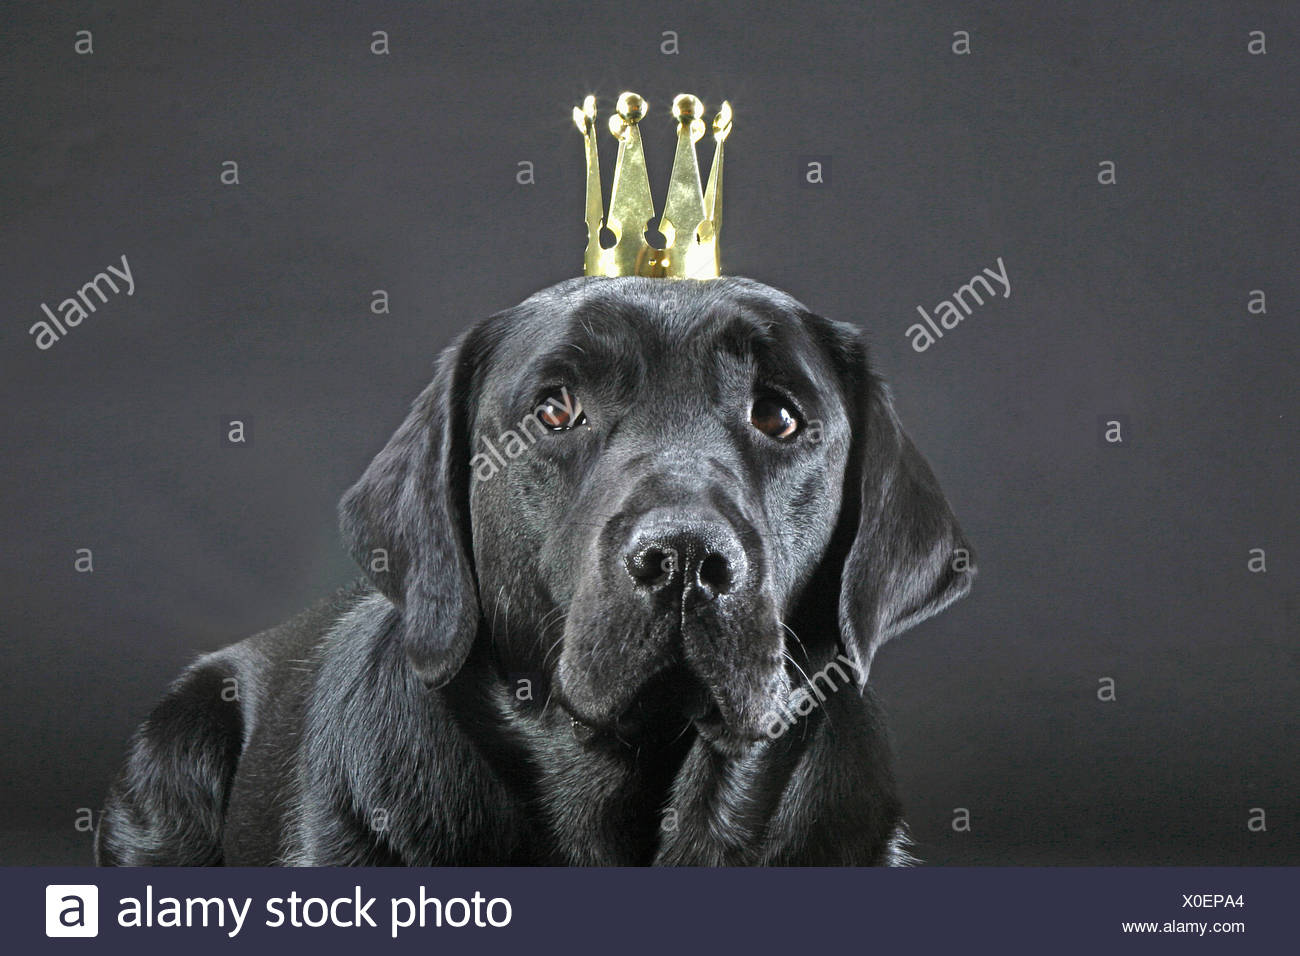 Labrador Retriever with crown - portrait - Stock Image